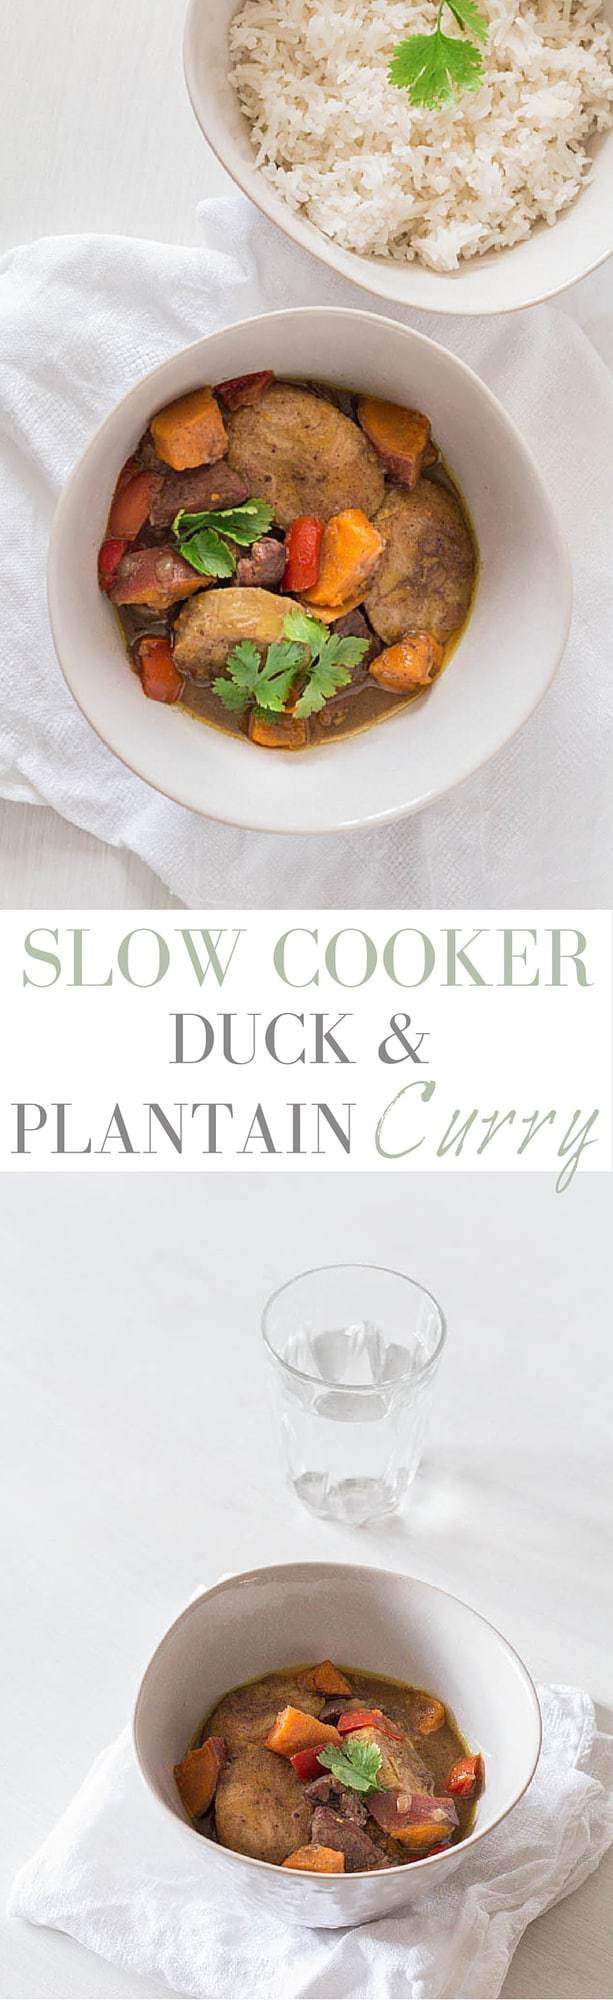 Slow Cooker Duck and Plantain Curry | Recipes From A Pantry